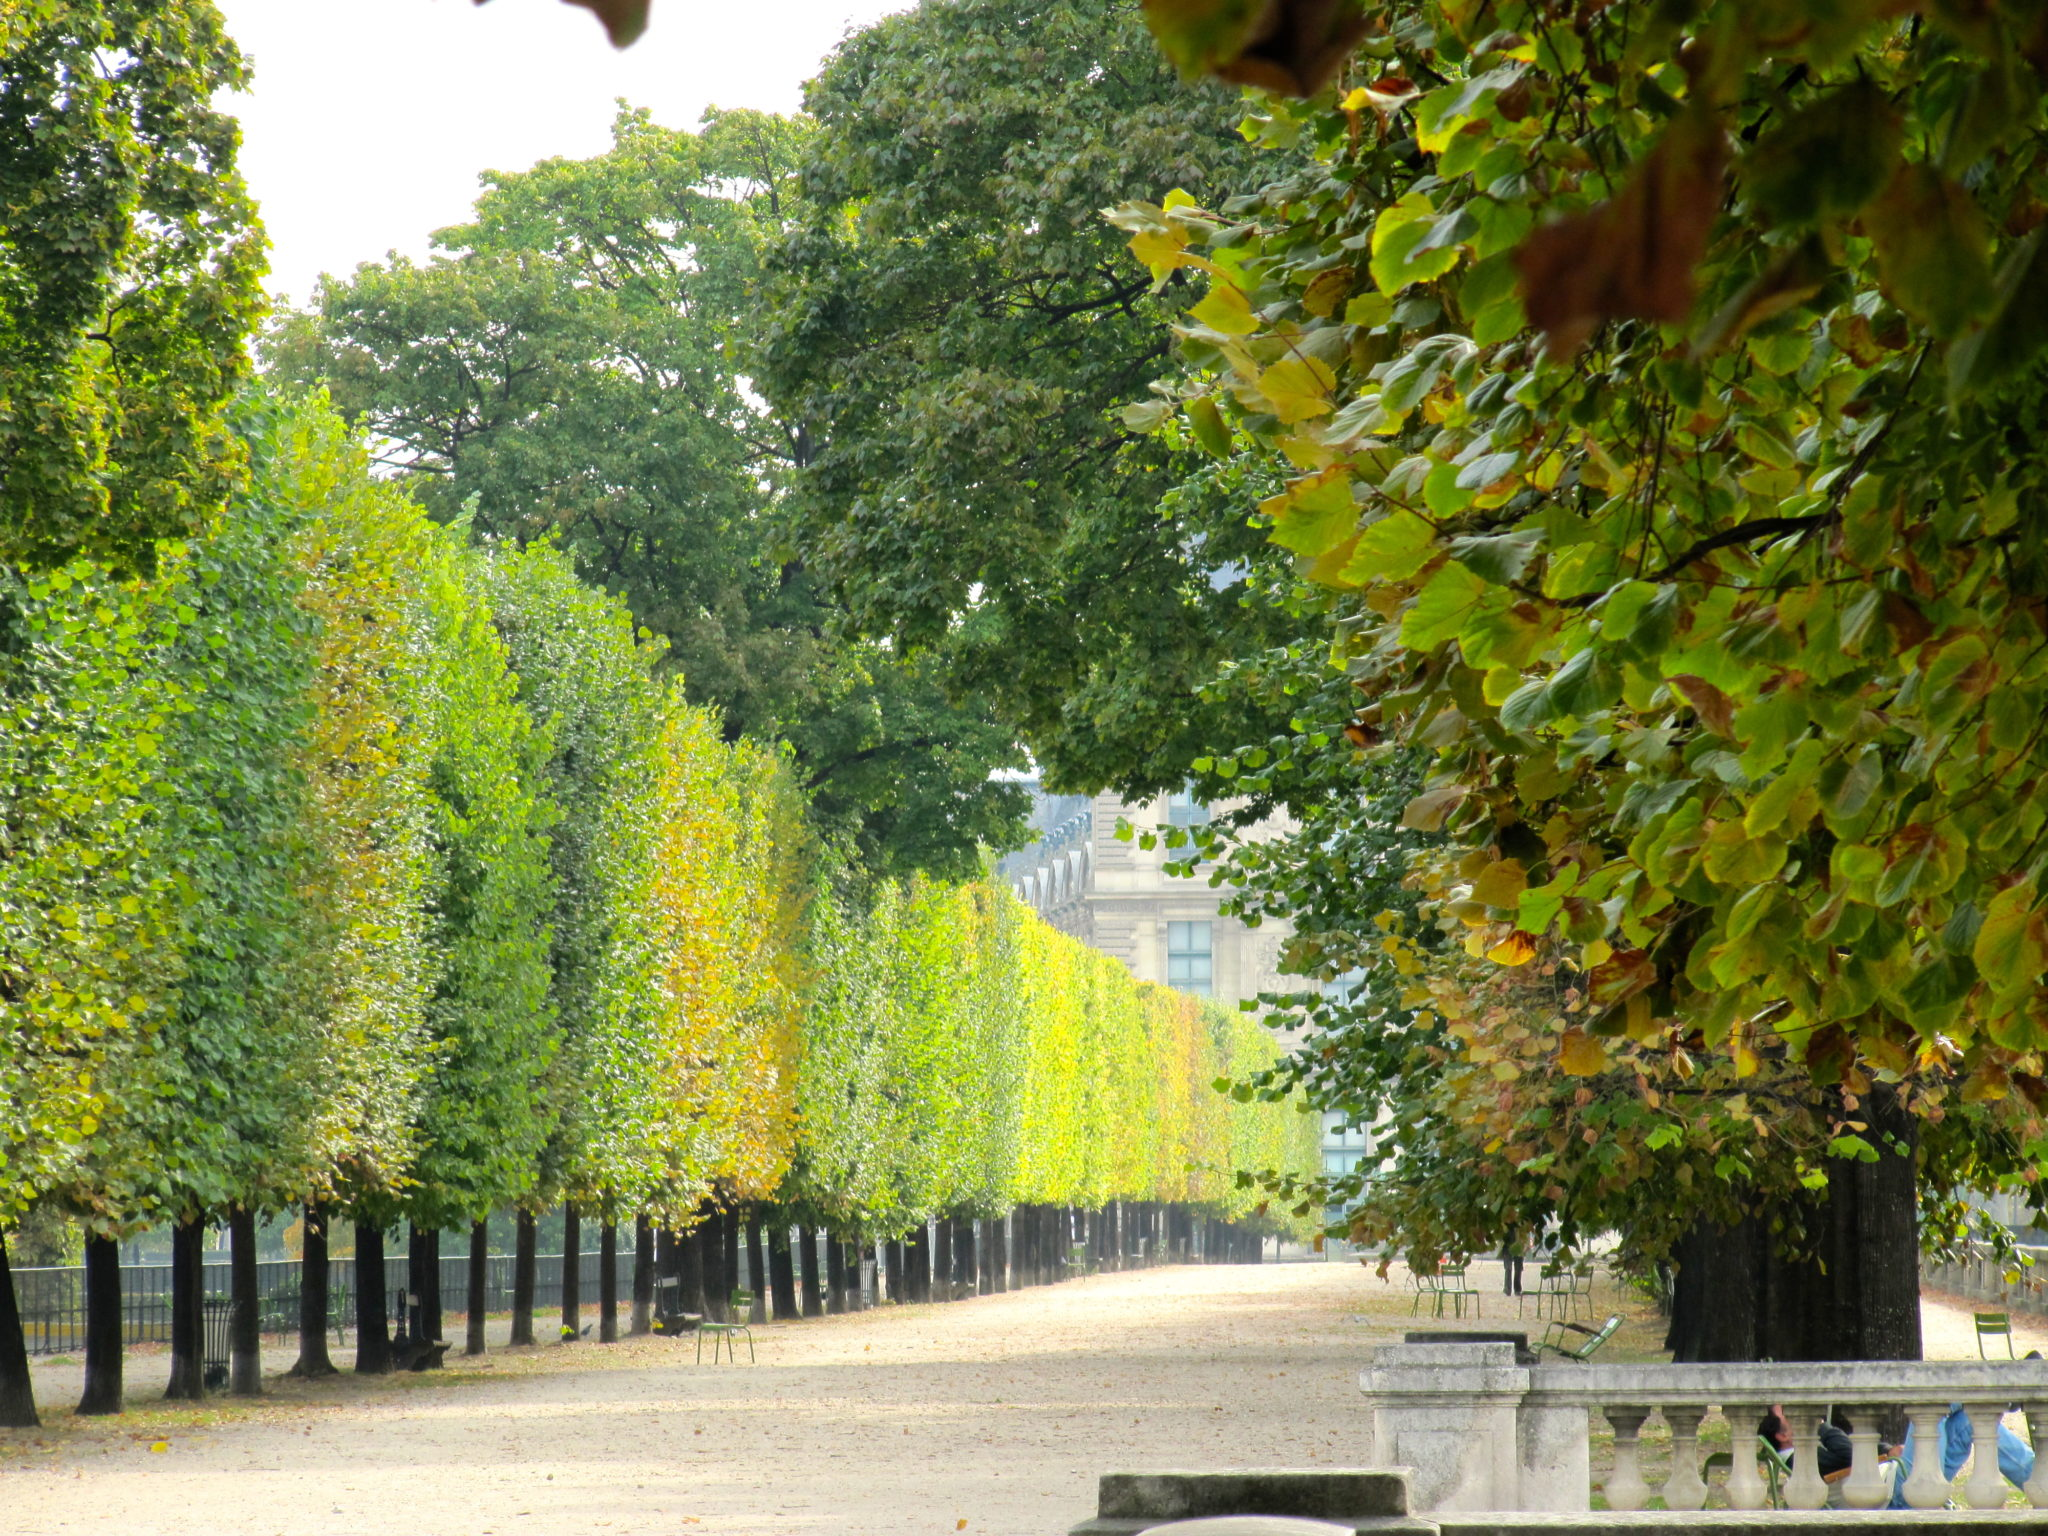 Perfectly clipped horse-chestnut trees on Champs-Élysées